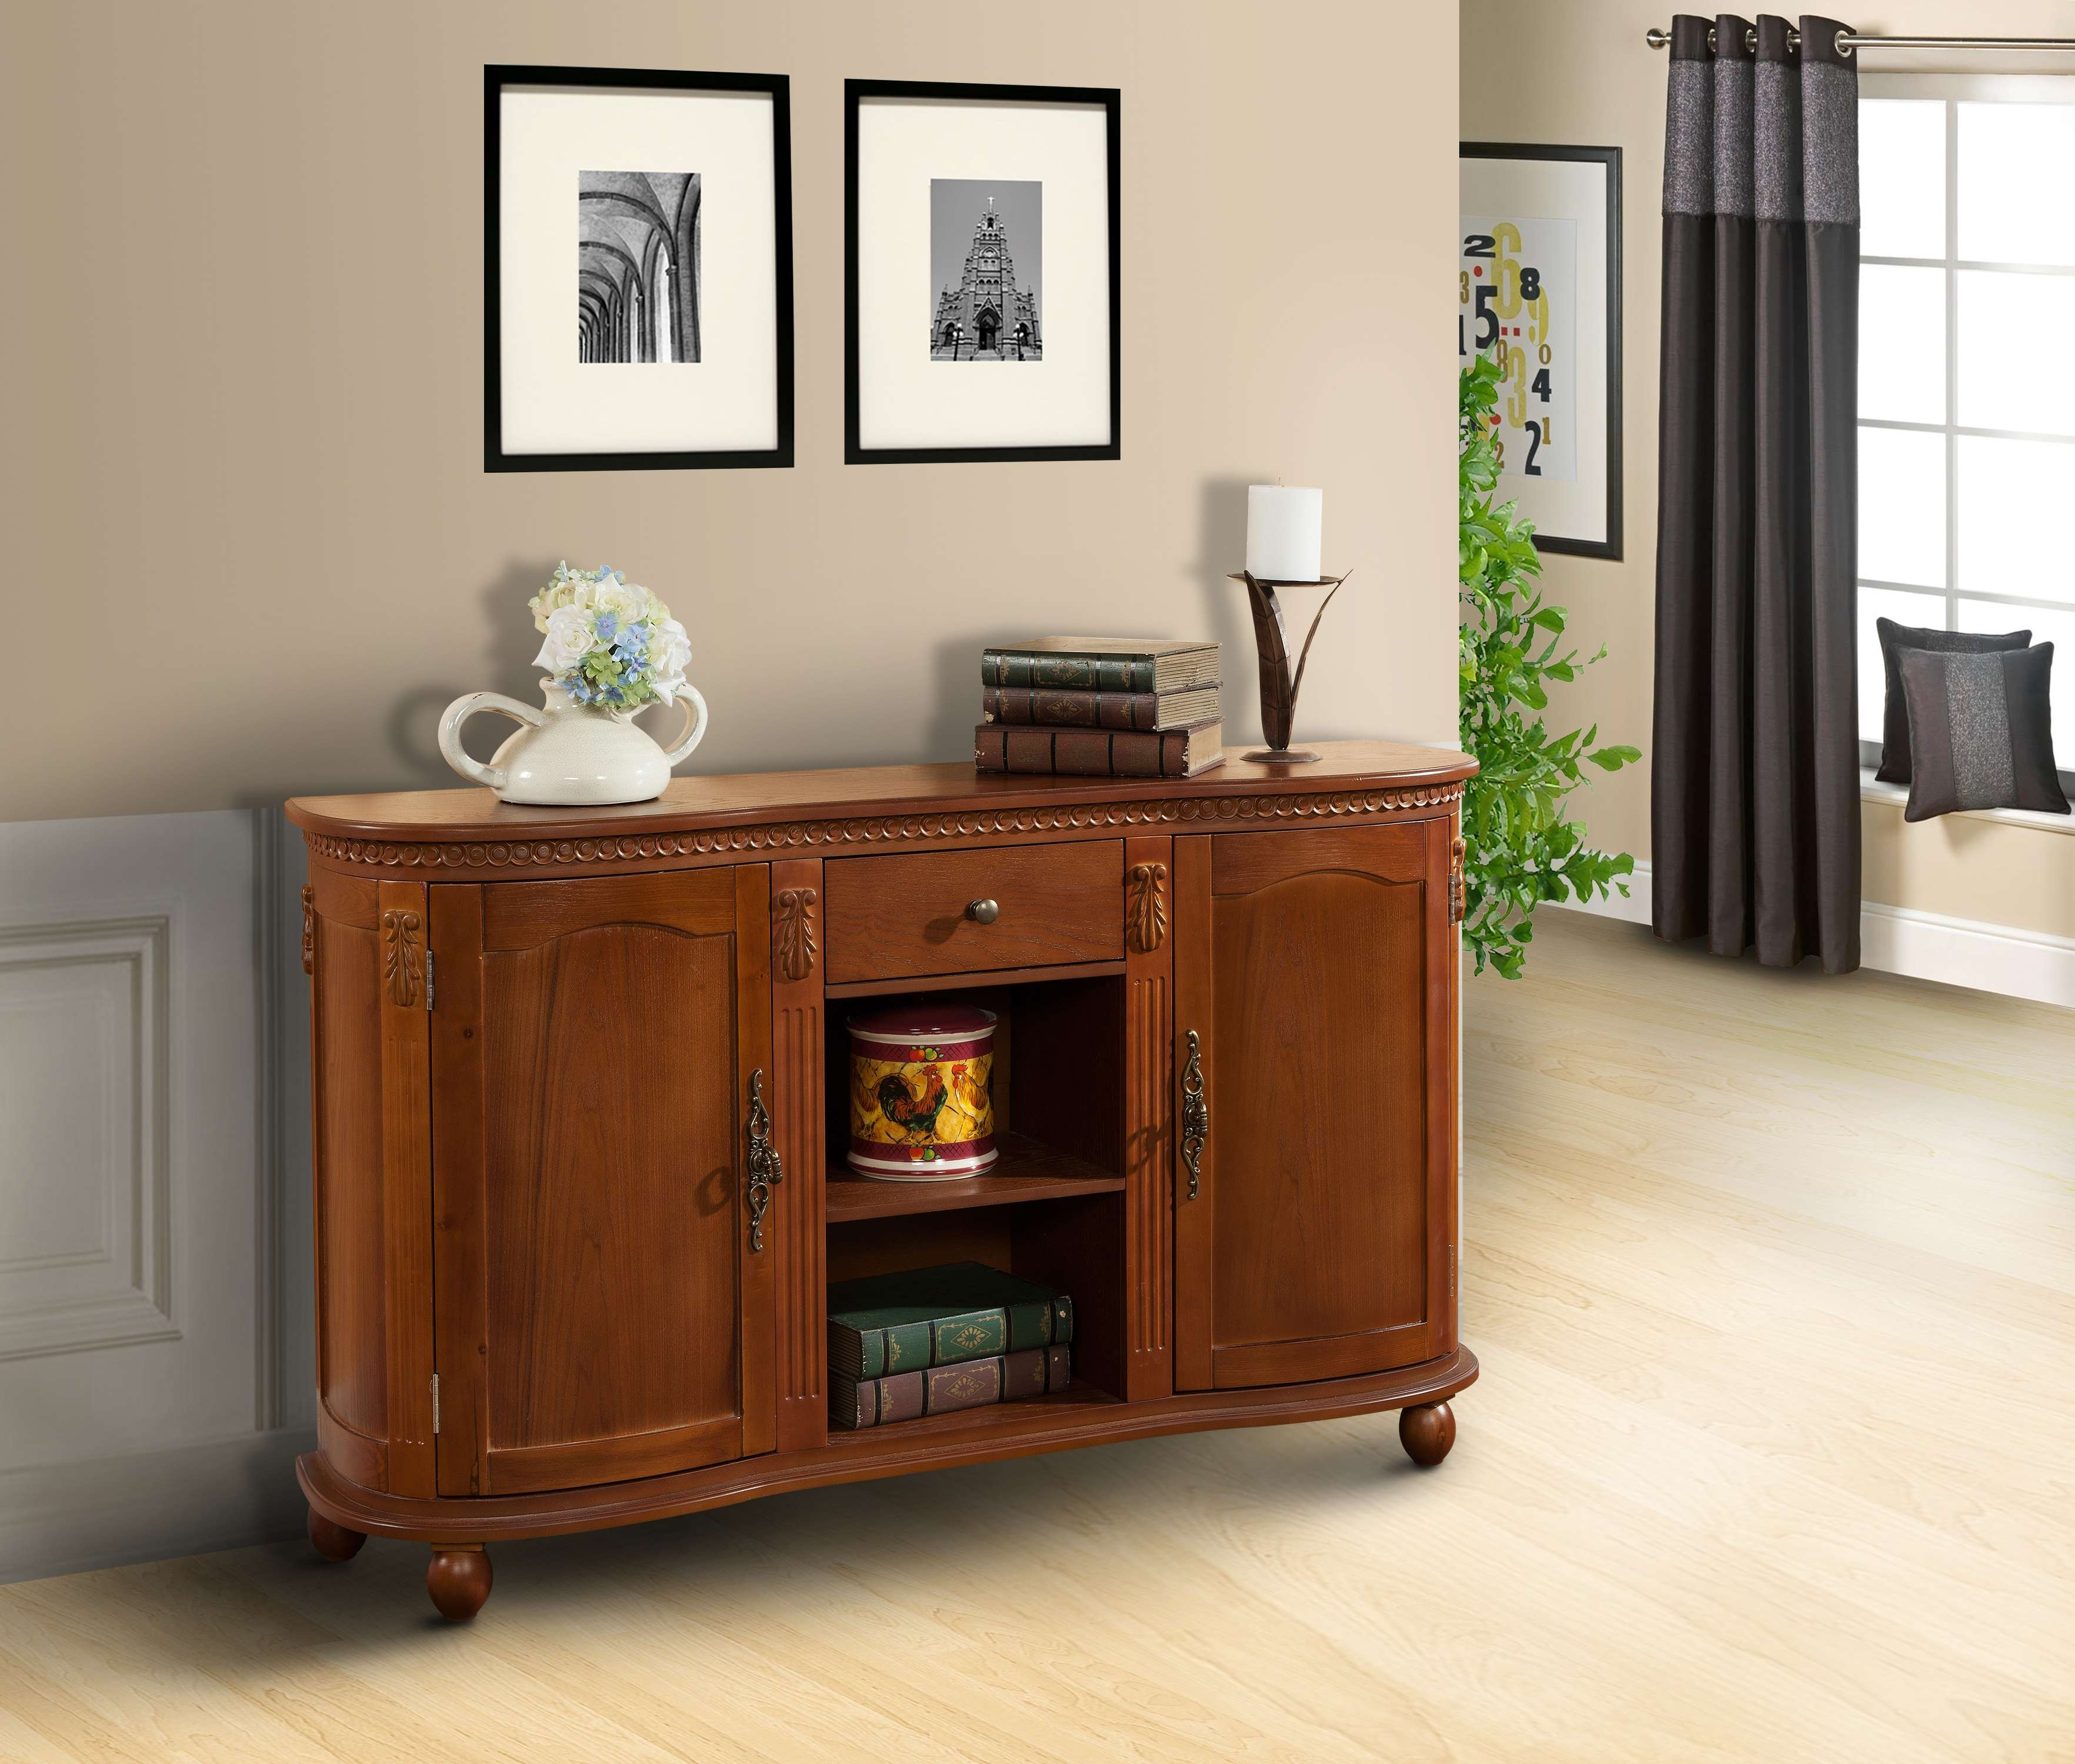 Beautiful Sideboard Buffet Table – Bjdgjy Pertaining To Sydney Sideboards And Buffets (View 12 of 20)